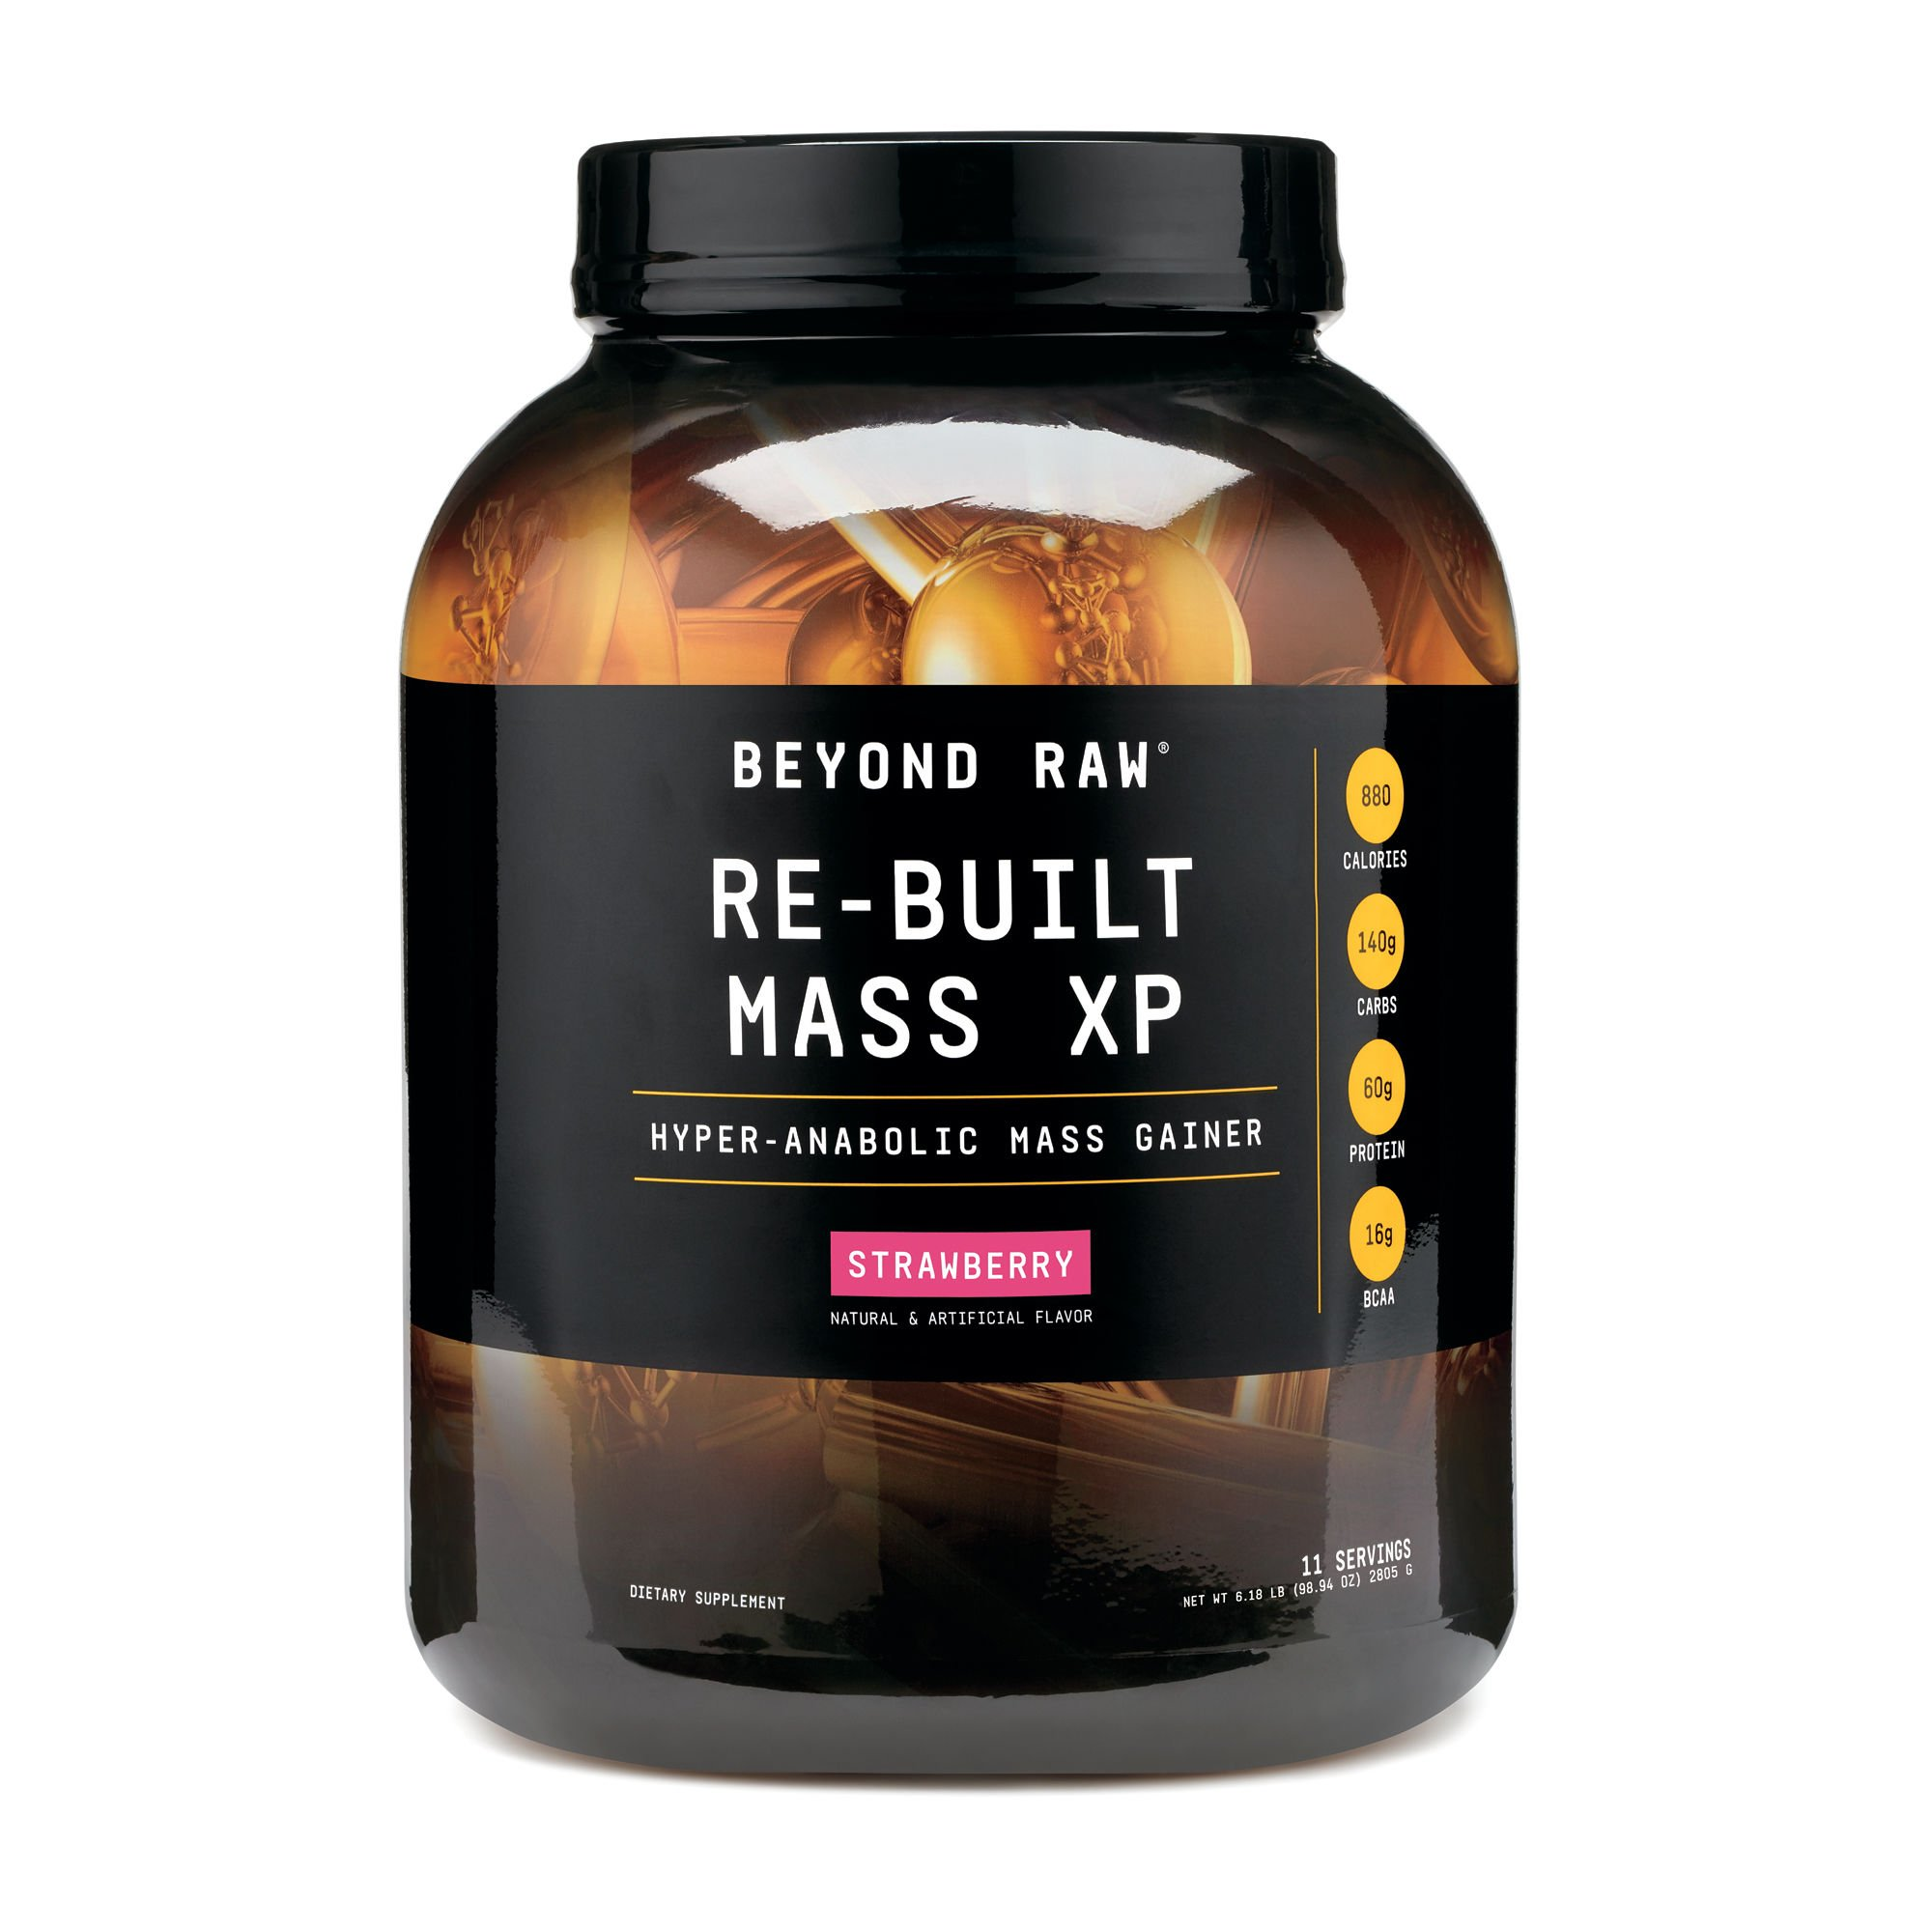 Beyond Raw Re-Built Mass XP CA Only, Strawberry, 11 Servings, Contains 880 Calories, 140g of Carbohydrates and 60g of Protein